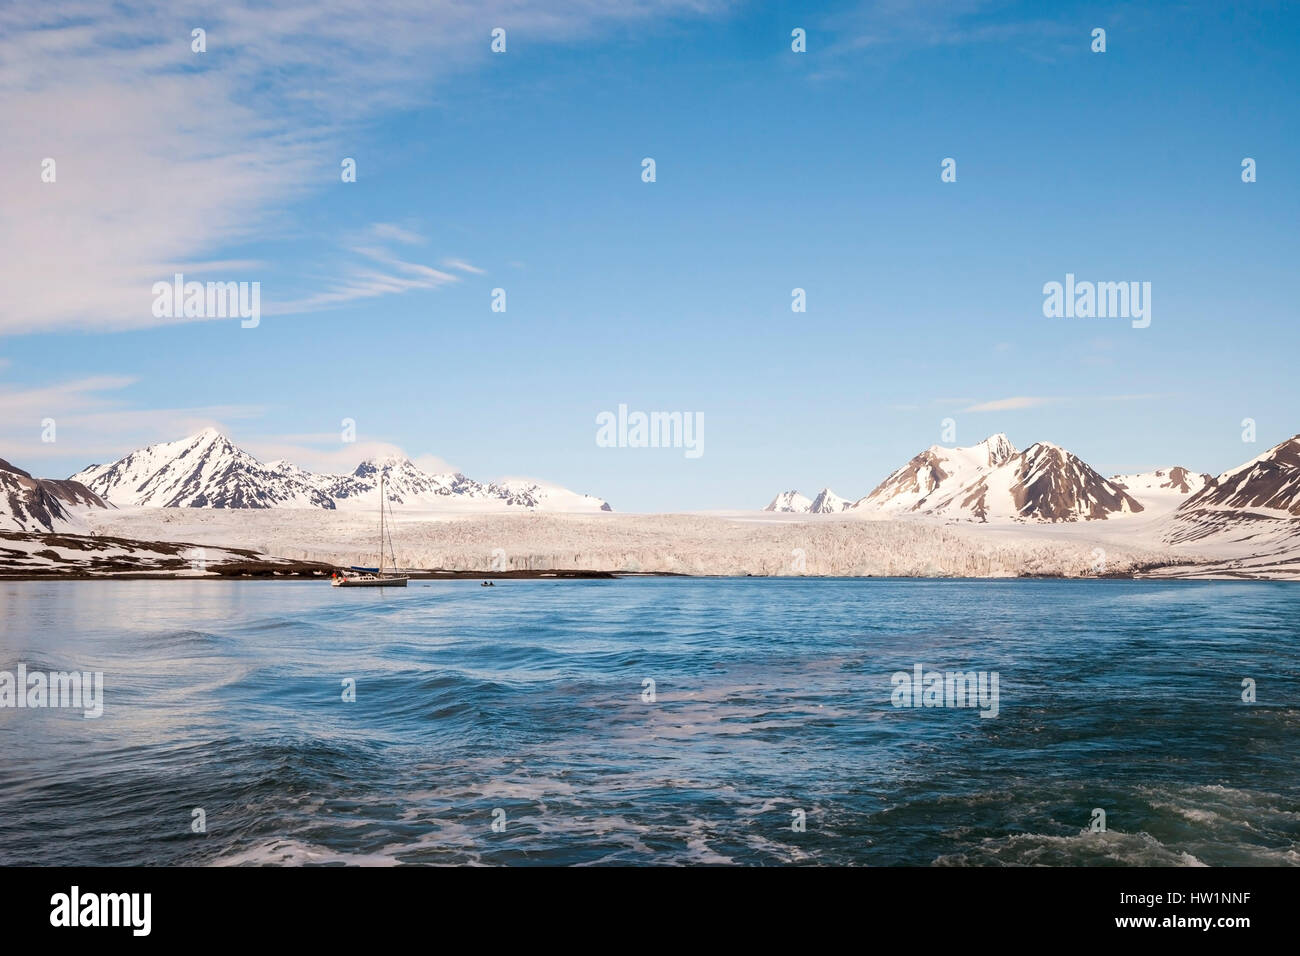 Sailing boat in front of the glacier and mountains in Svalbard, Arctic - Stock Image